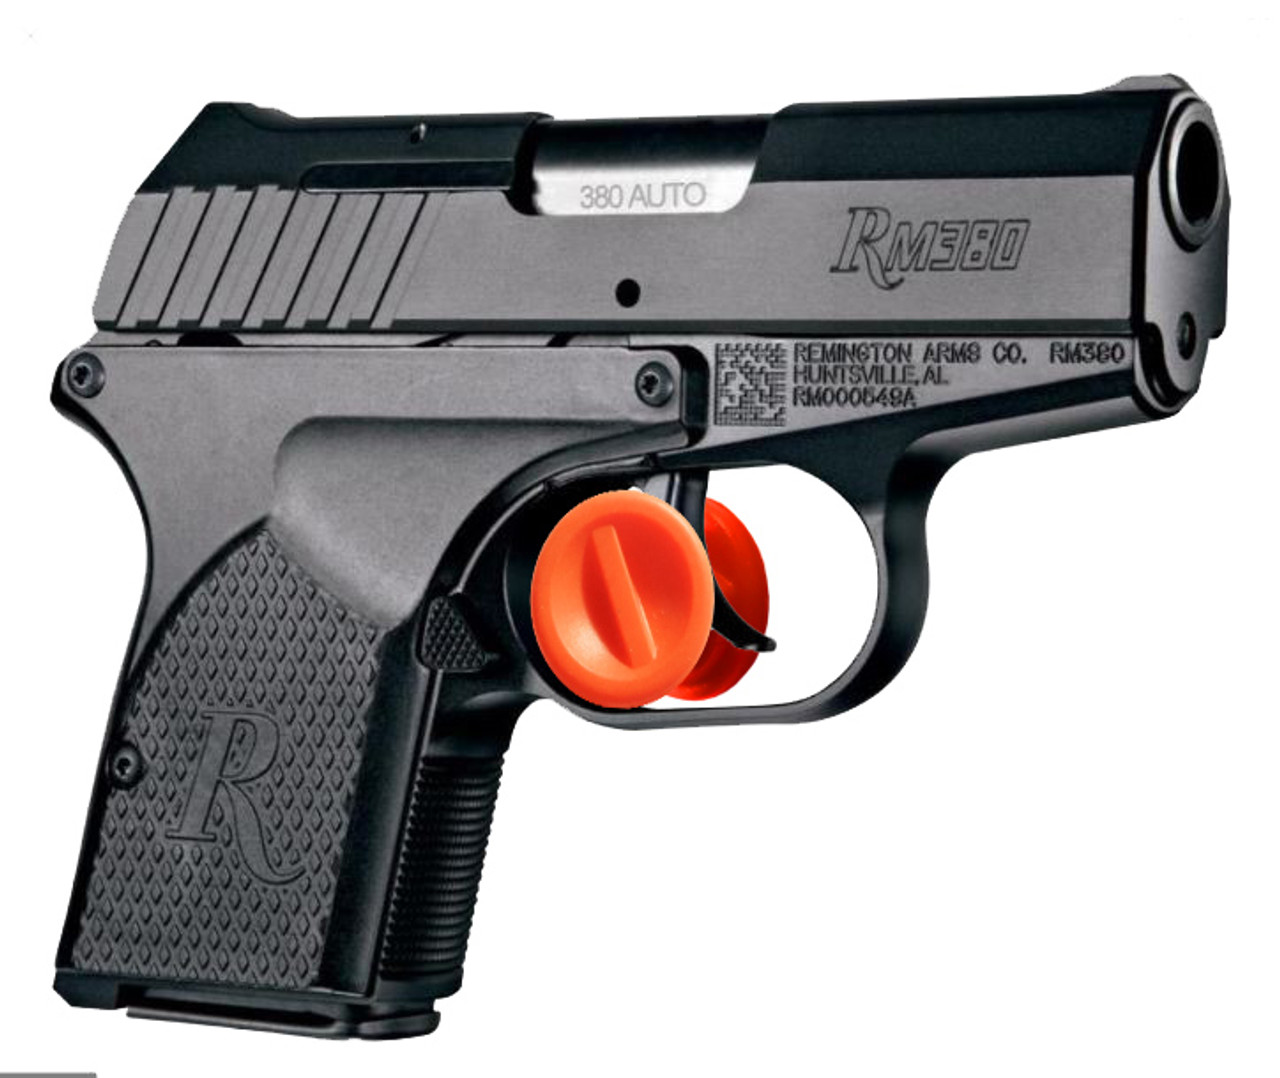 Micro Trigger Stop Holster Fits Remington 380